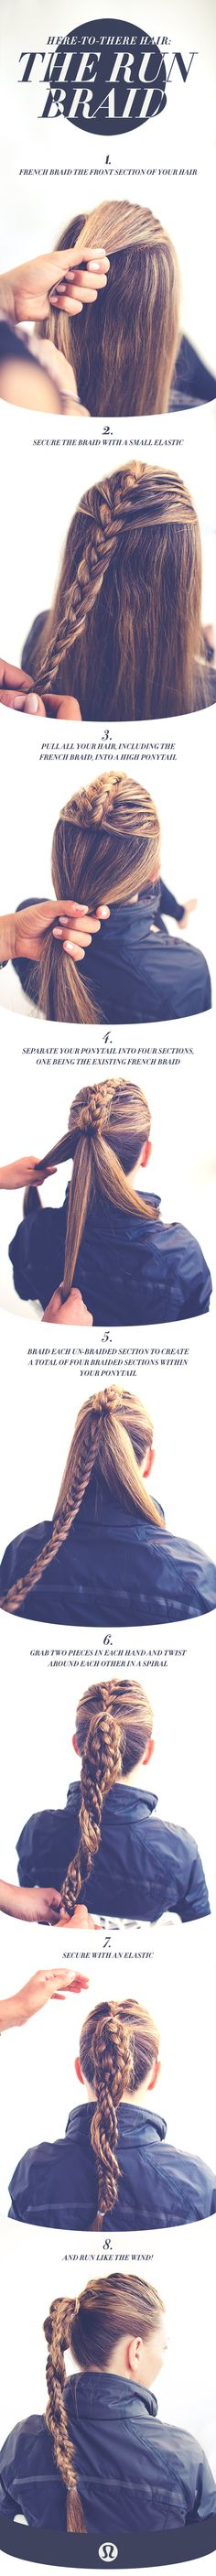 I officially want long hair & someone to braid it for me | here-to-there hair: the run braid